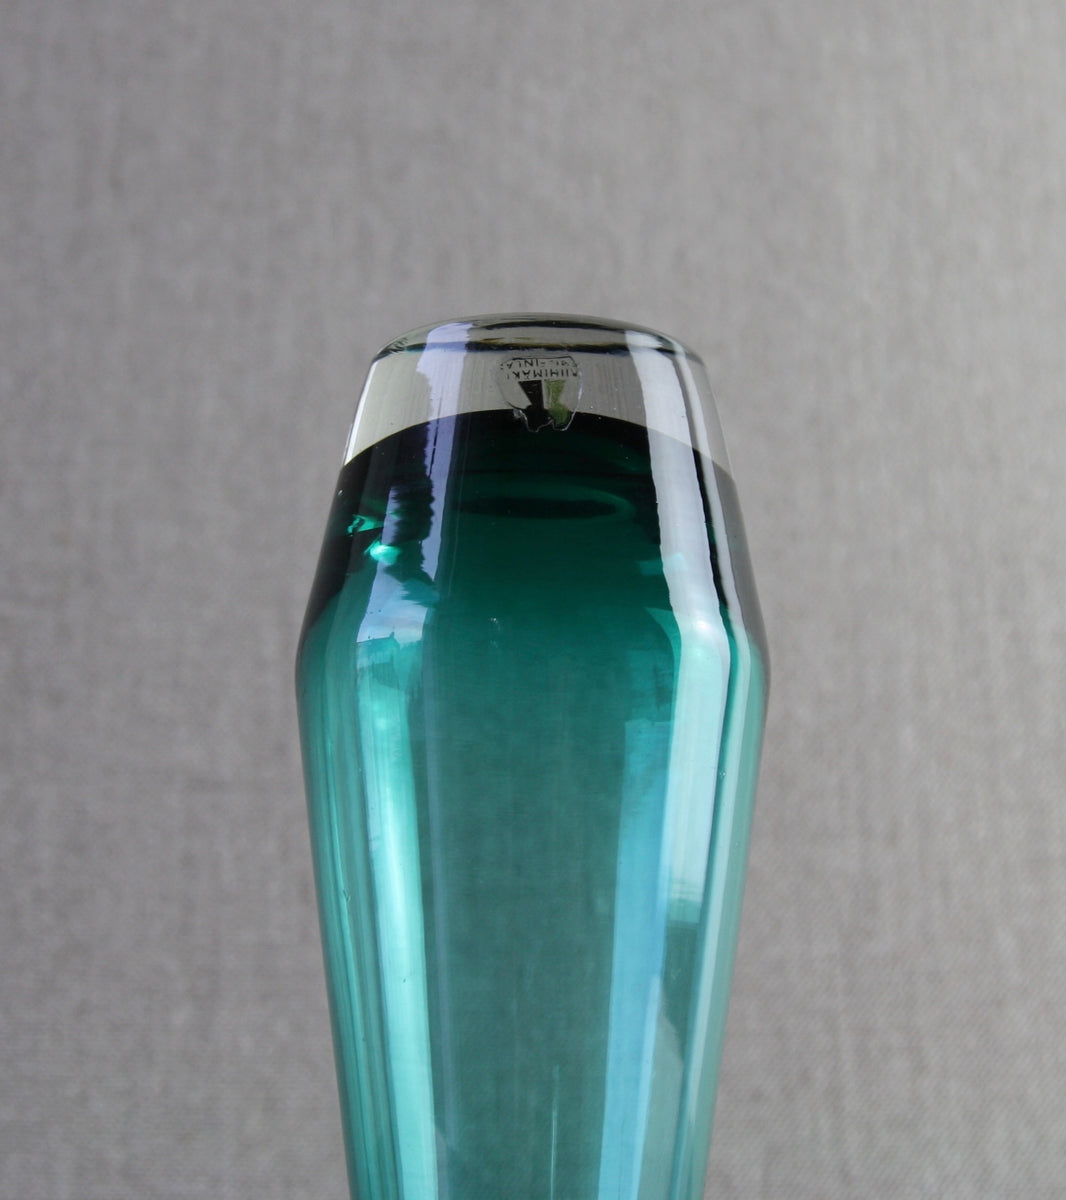 Teal 'Tapered' Small Vase <br> Tamara Aladin, C. 1965